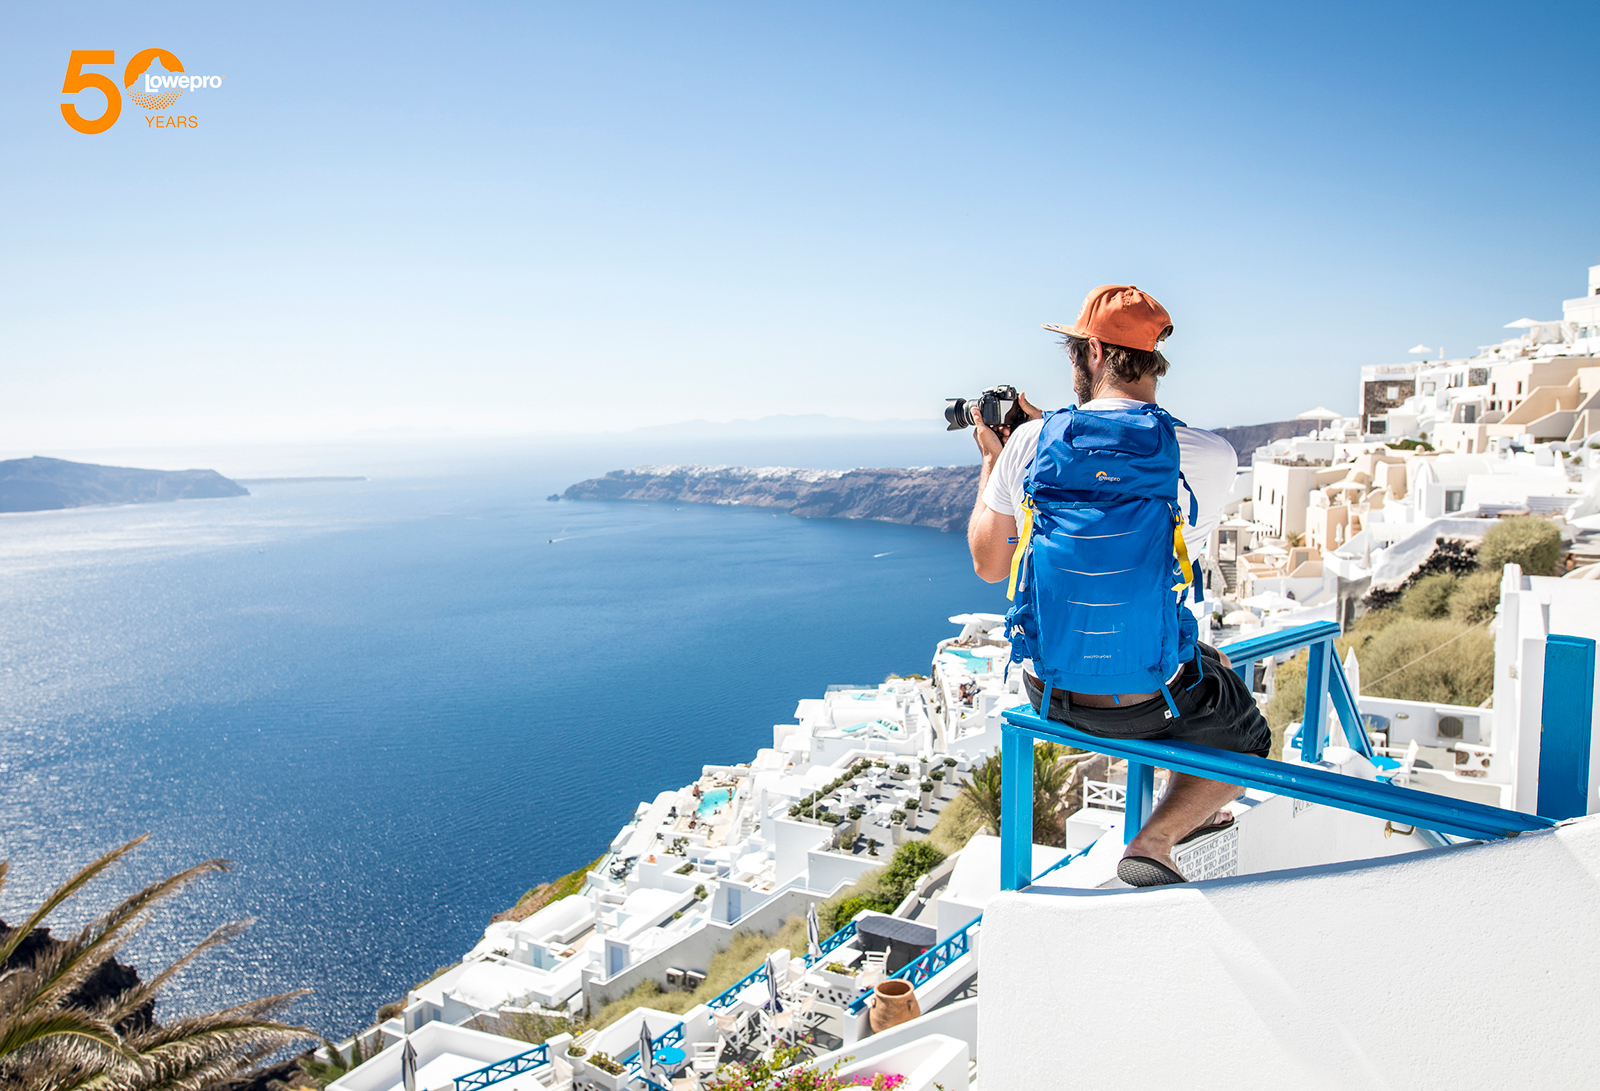 Lowepro Visits Santorini Greece